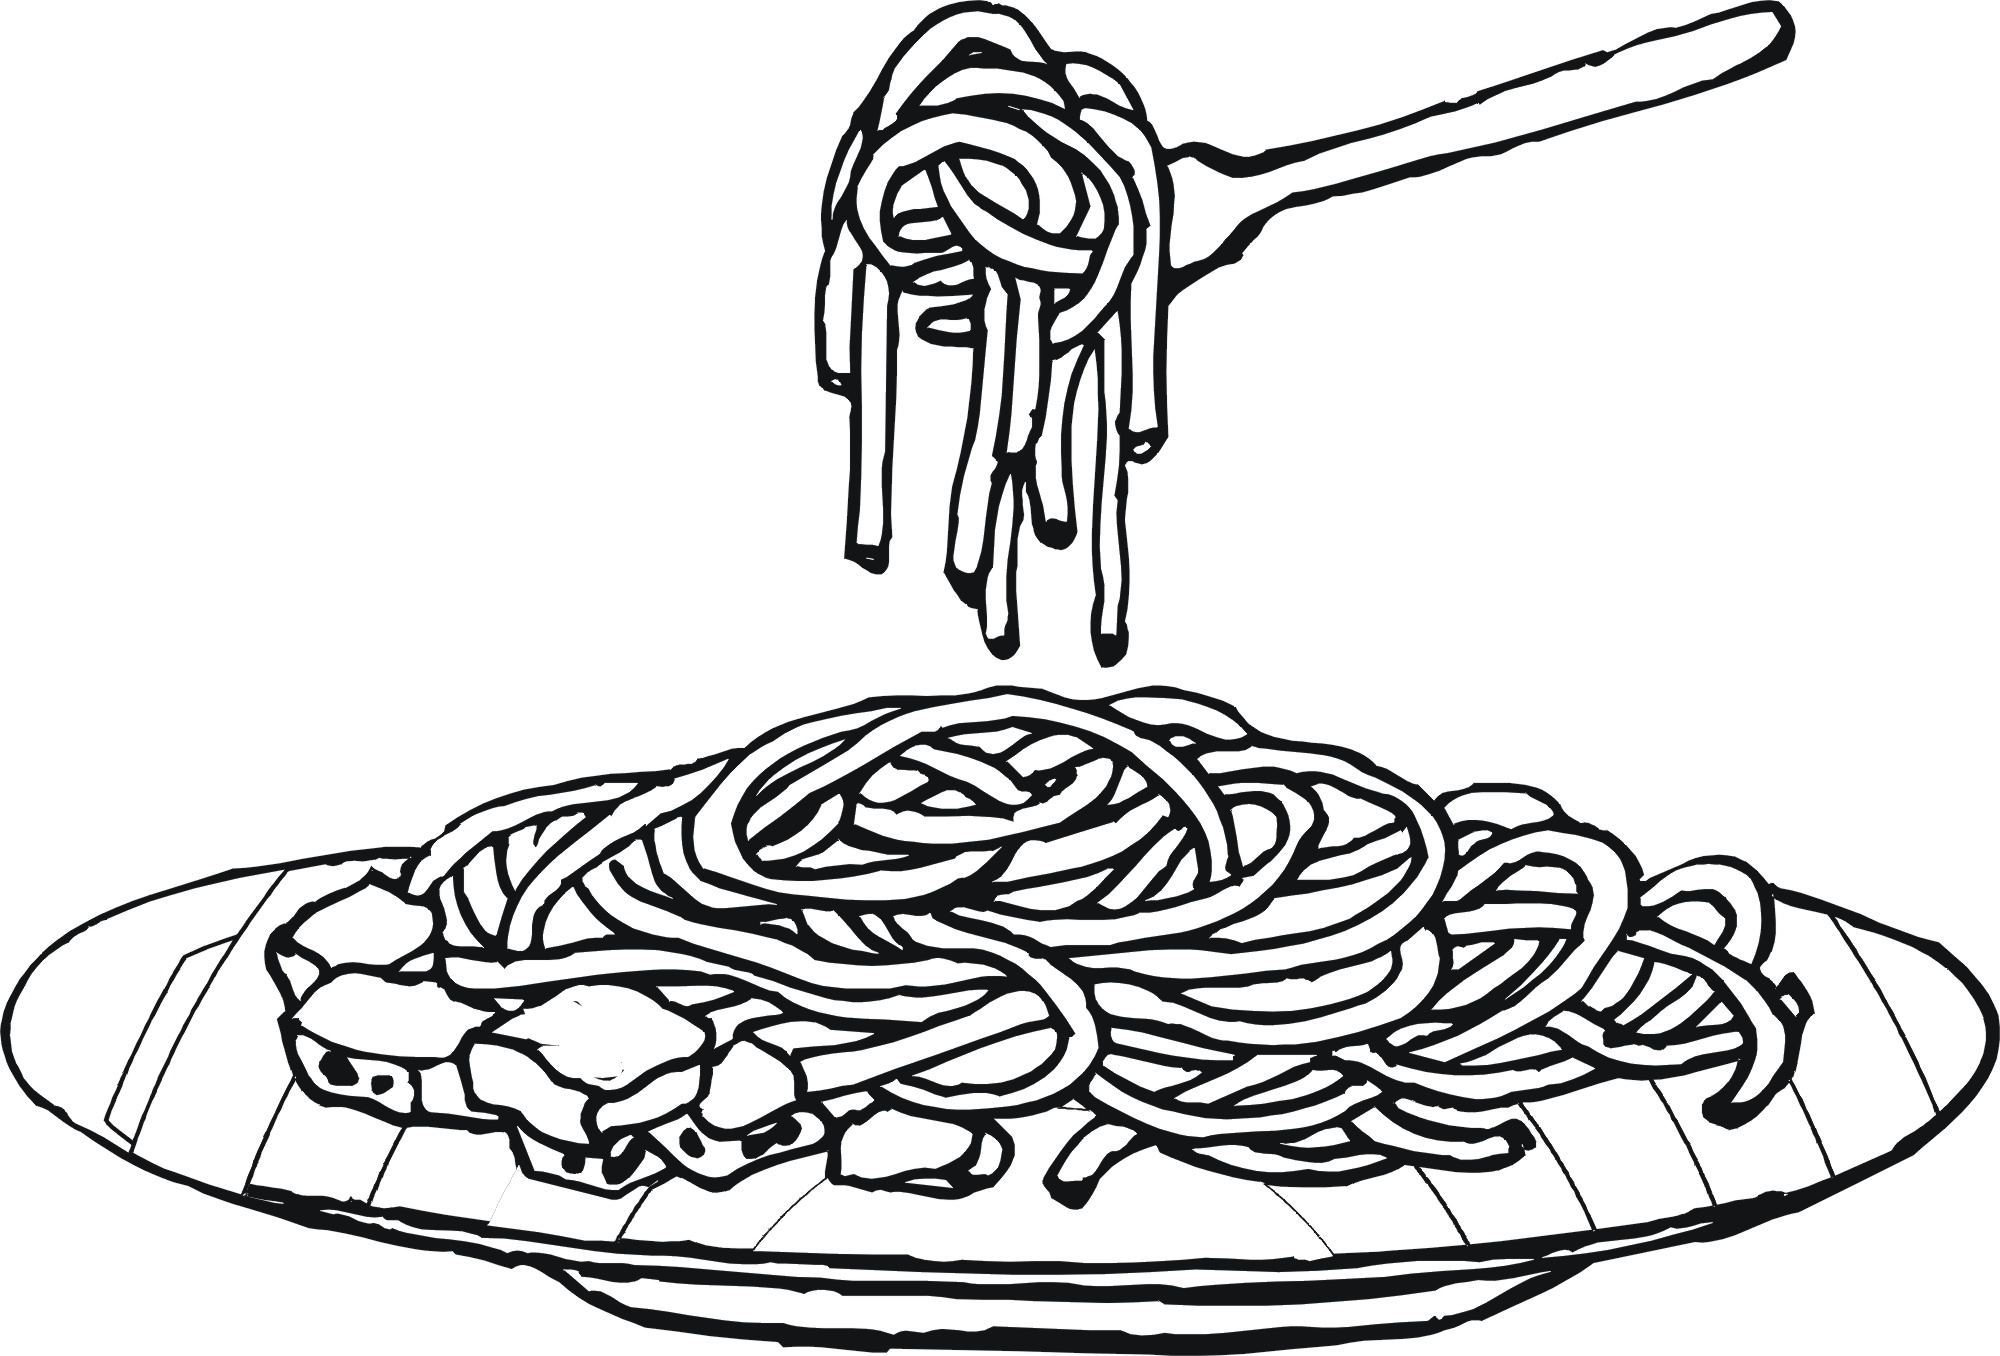 Free clipart printables for chicken n noodle dinner picture black and white Spaghetti Dinner Clipart Black And White - Free Clipart picture black and white